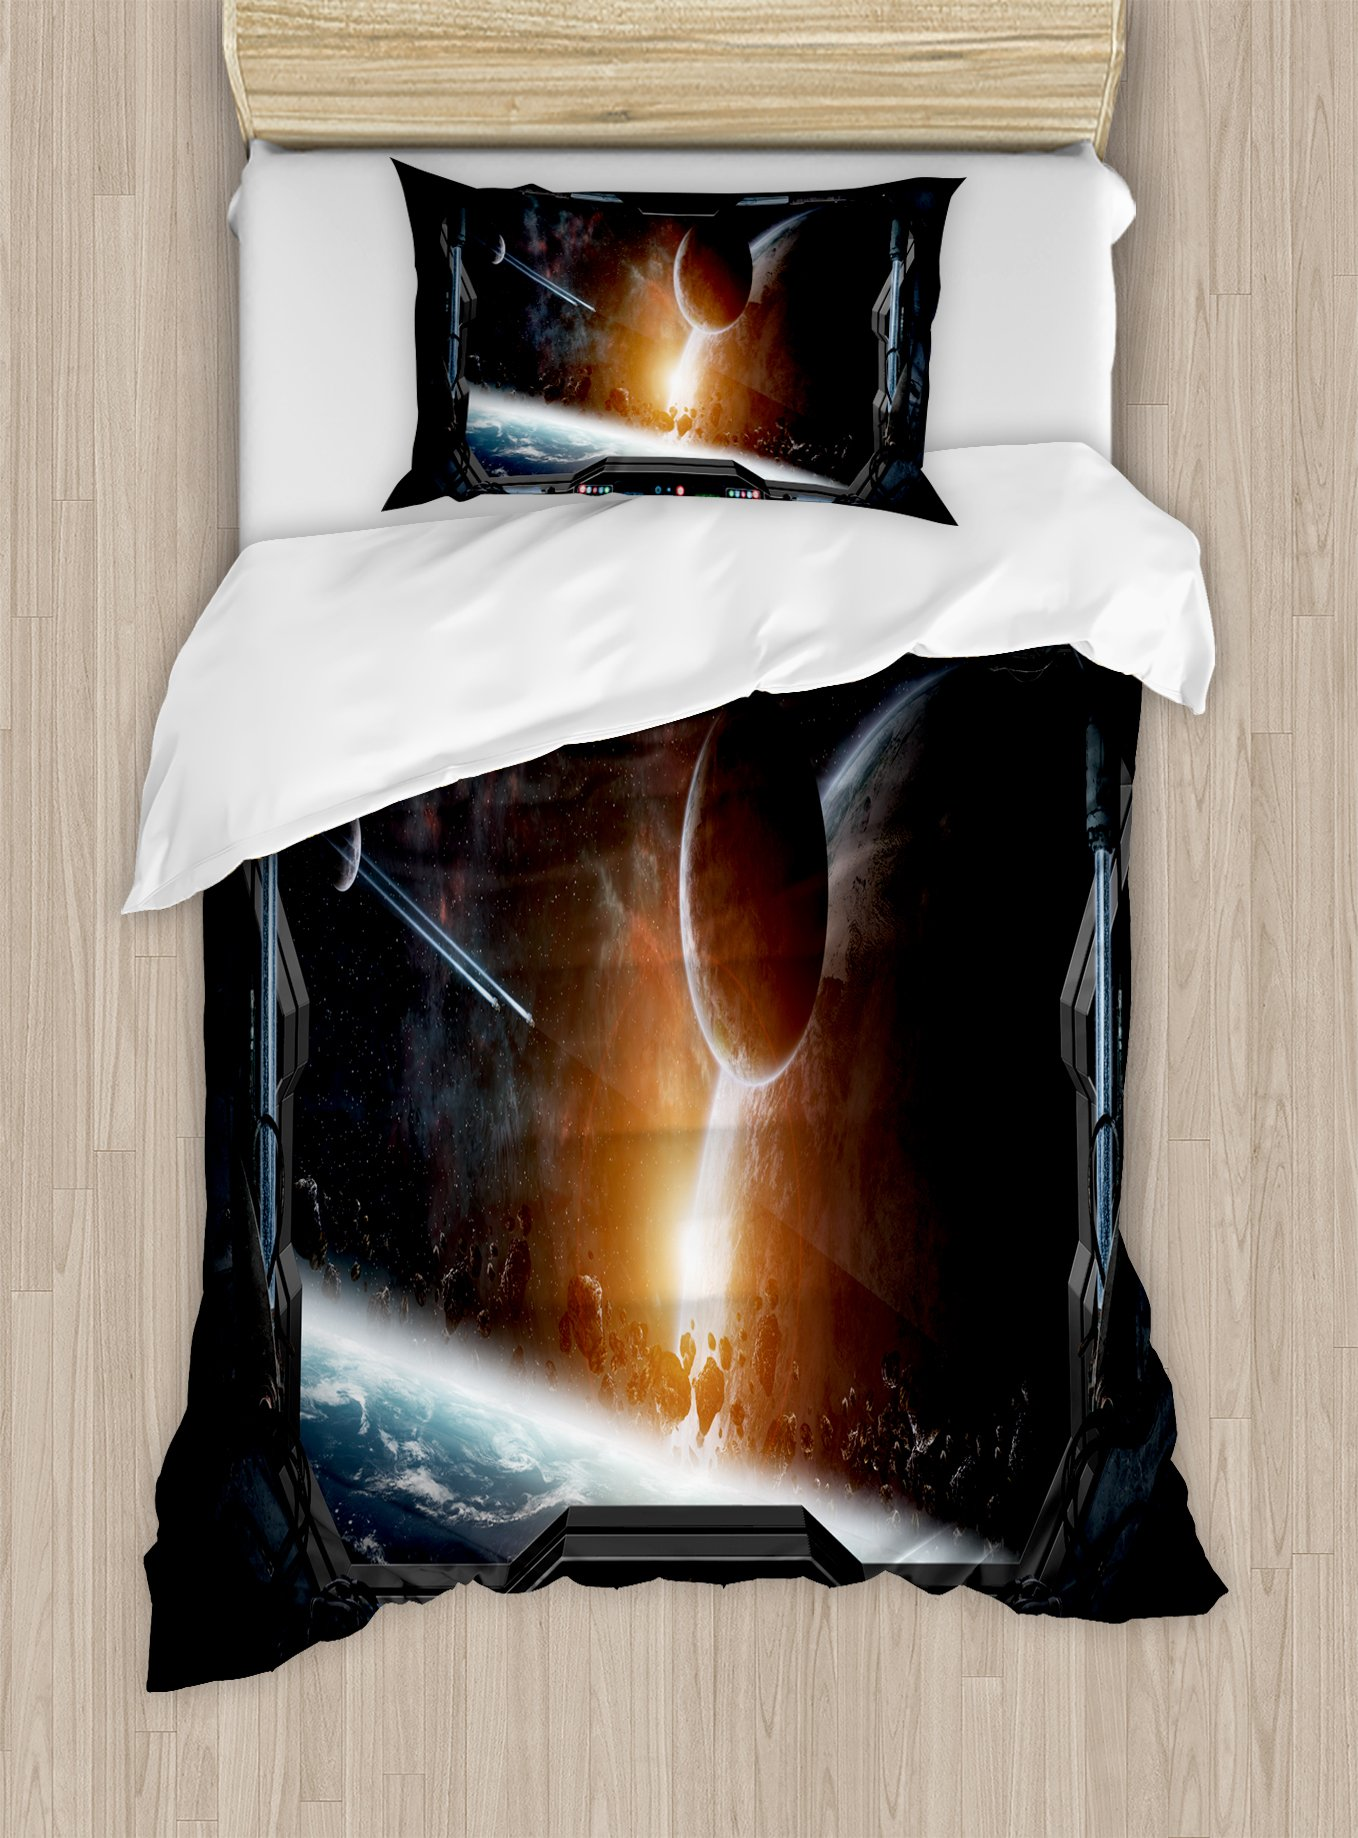 Ambesonne Outer Space Duvet Cover Set Twin Size, Scenery of Planets from The Window of a Shuttle Bodies Astronaut Space Station, Decorative 2 Piece Bedding Set with 1 Pillow Sham, Gray Orange